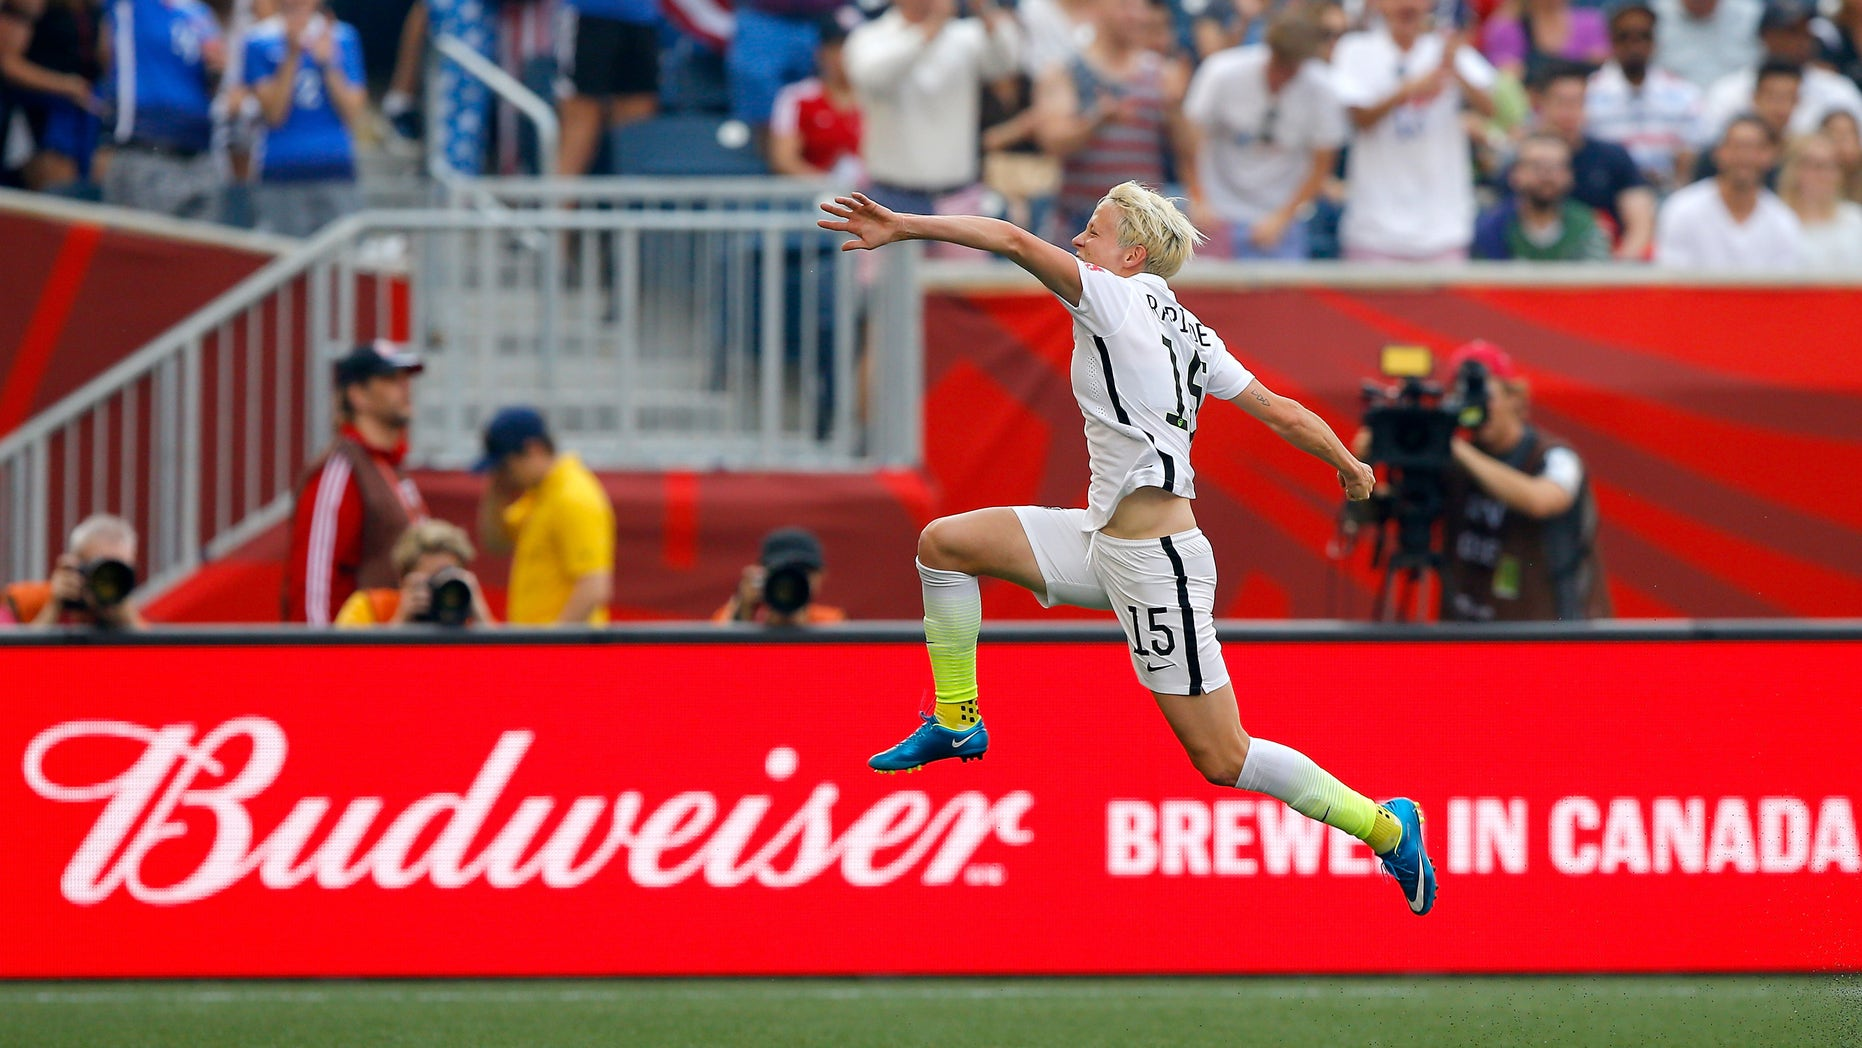 WINNIPEG, MB - JUNE 08:  Megan Rapinoe #15 of United States celebrates her opening goal against Australia in the first half during the FIFA Women's World Cup 2015 Group D match at Winnipeg Stadium on June 8, 2015 in Winnipeg, Canada.  (Photo by Kevin C. Cox/Getty Images)